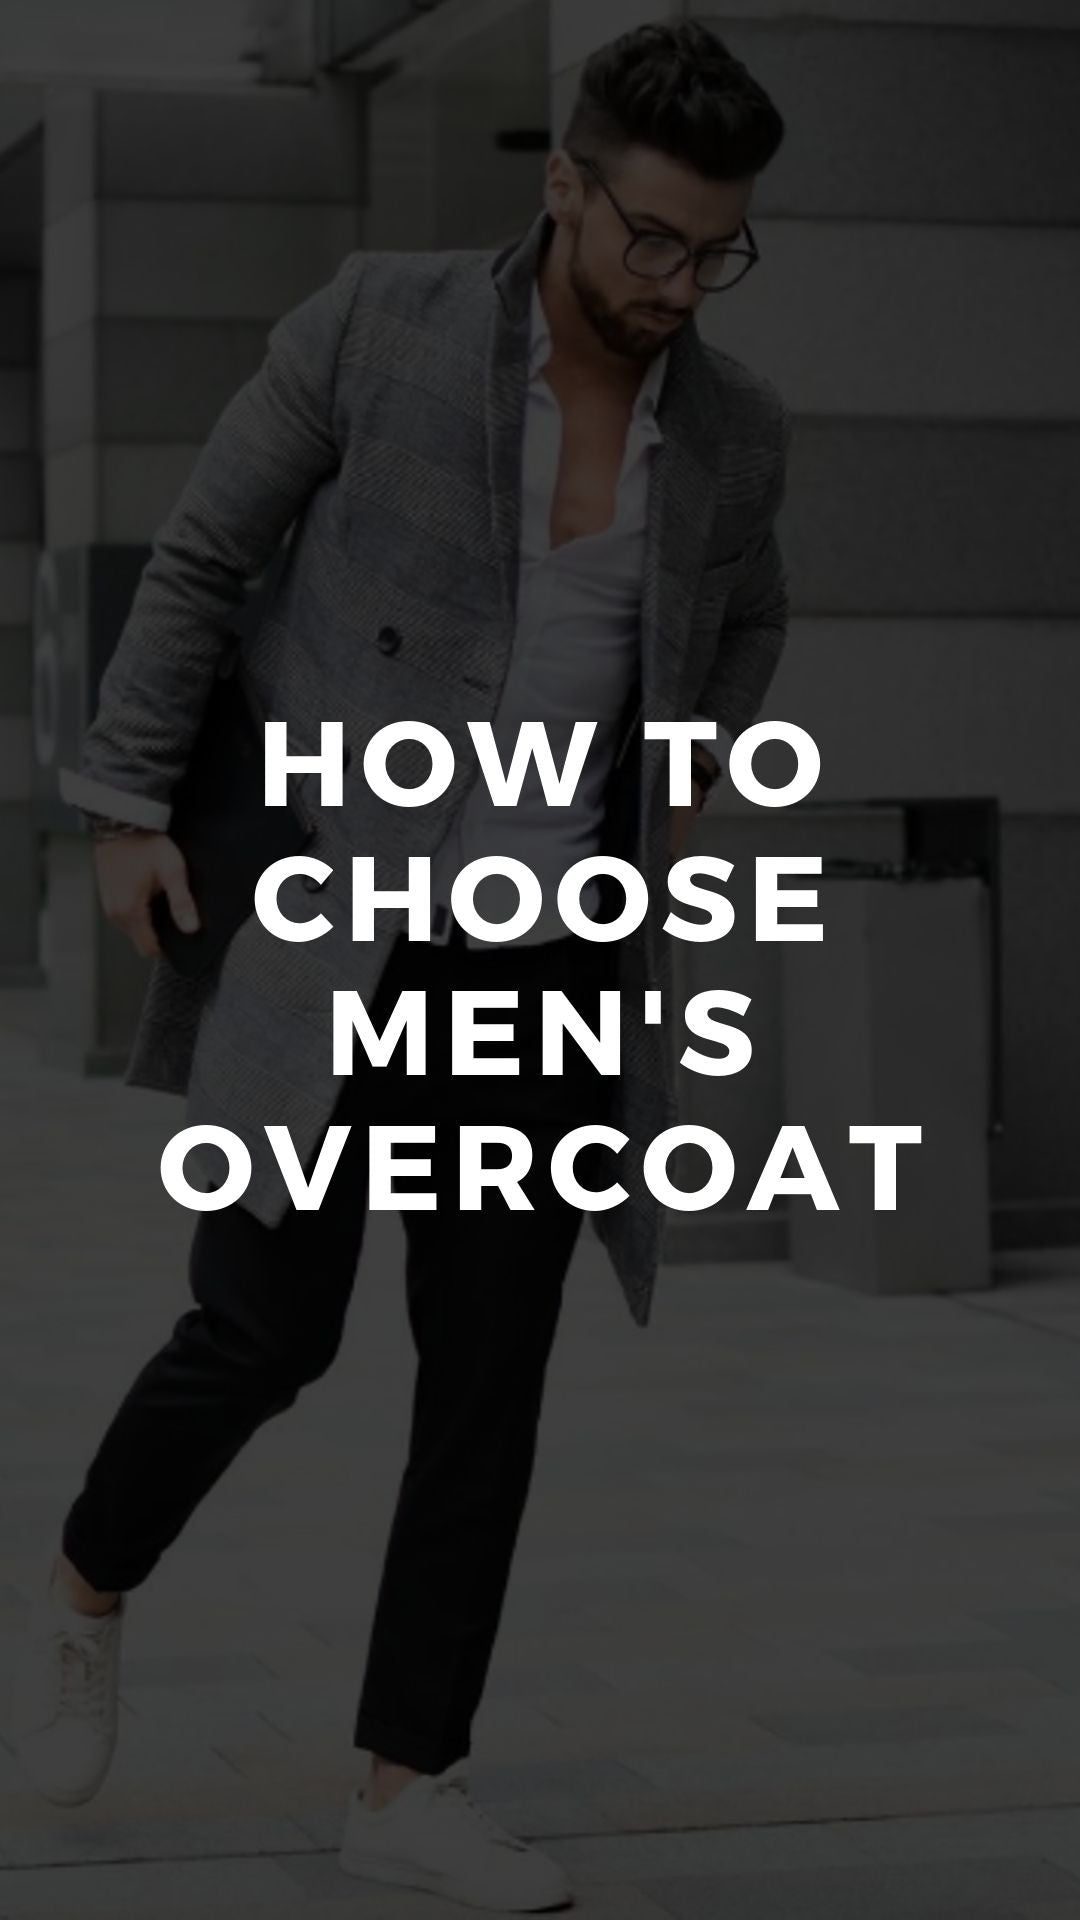 How to Choose Men's Overcoat